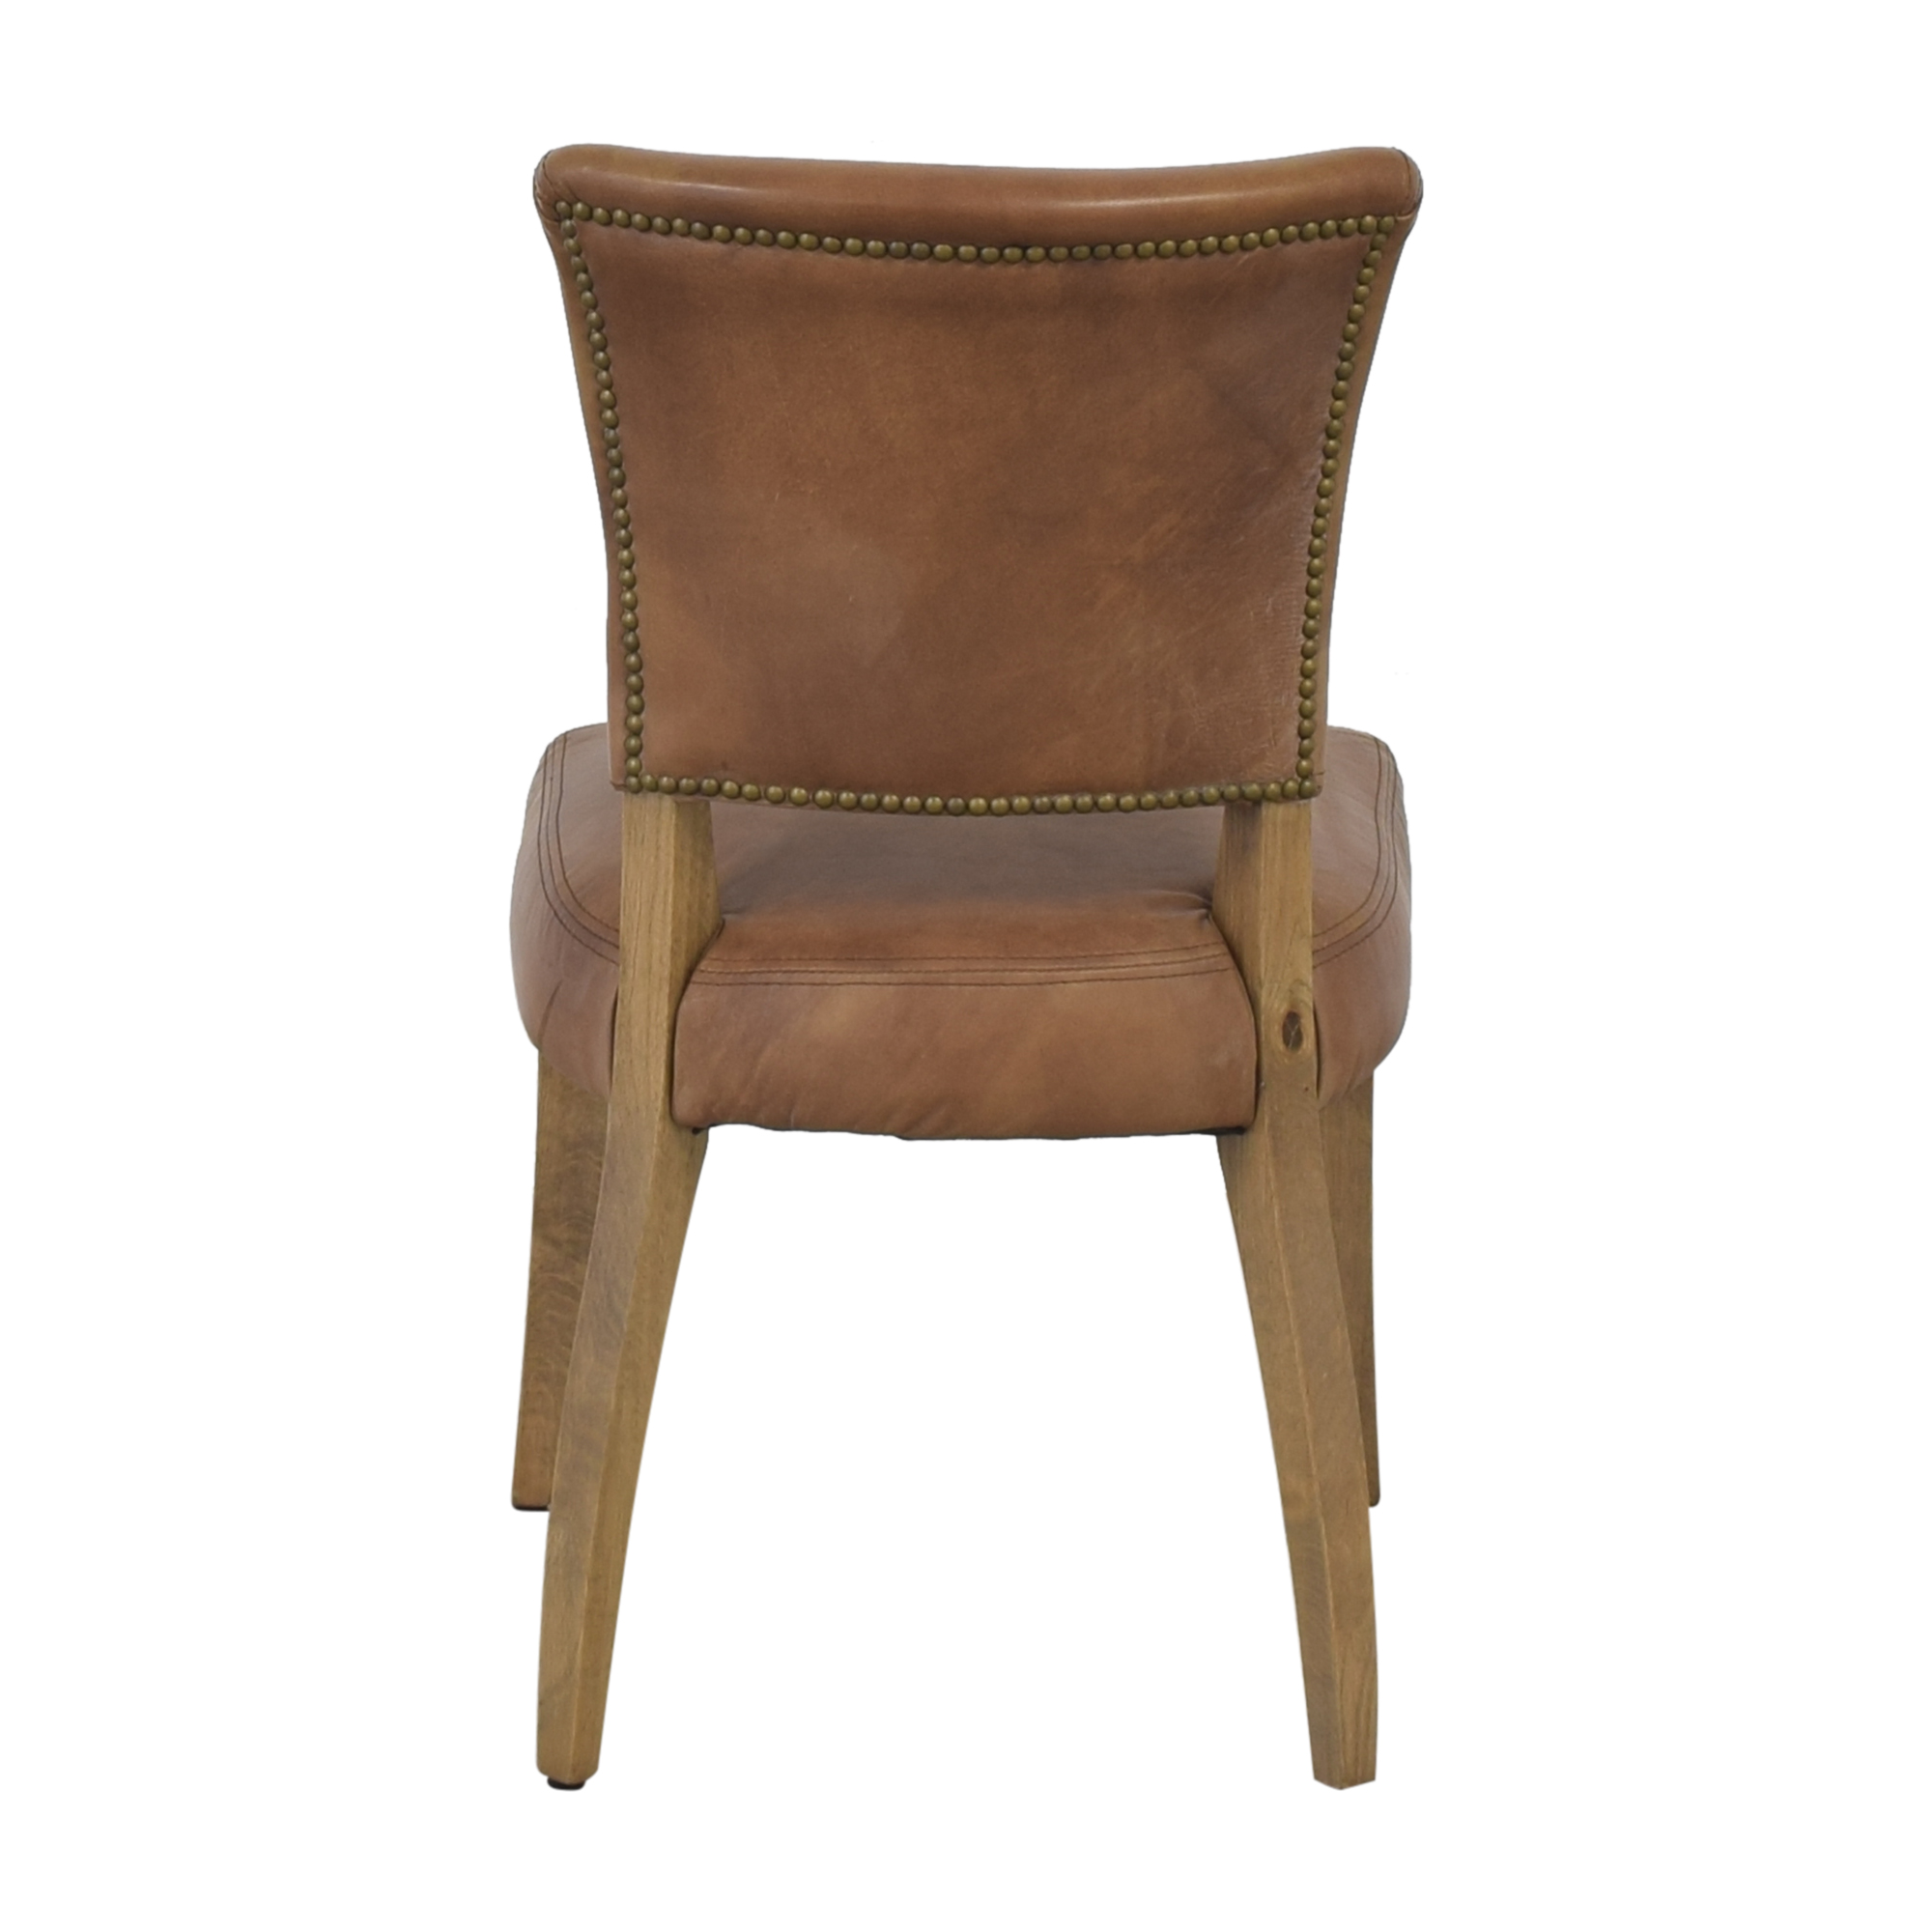 Restoration Hardware Restoration Hardware Adele Leather Side Chair dimensions